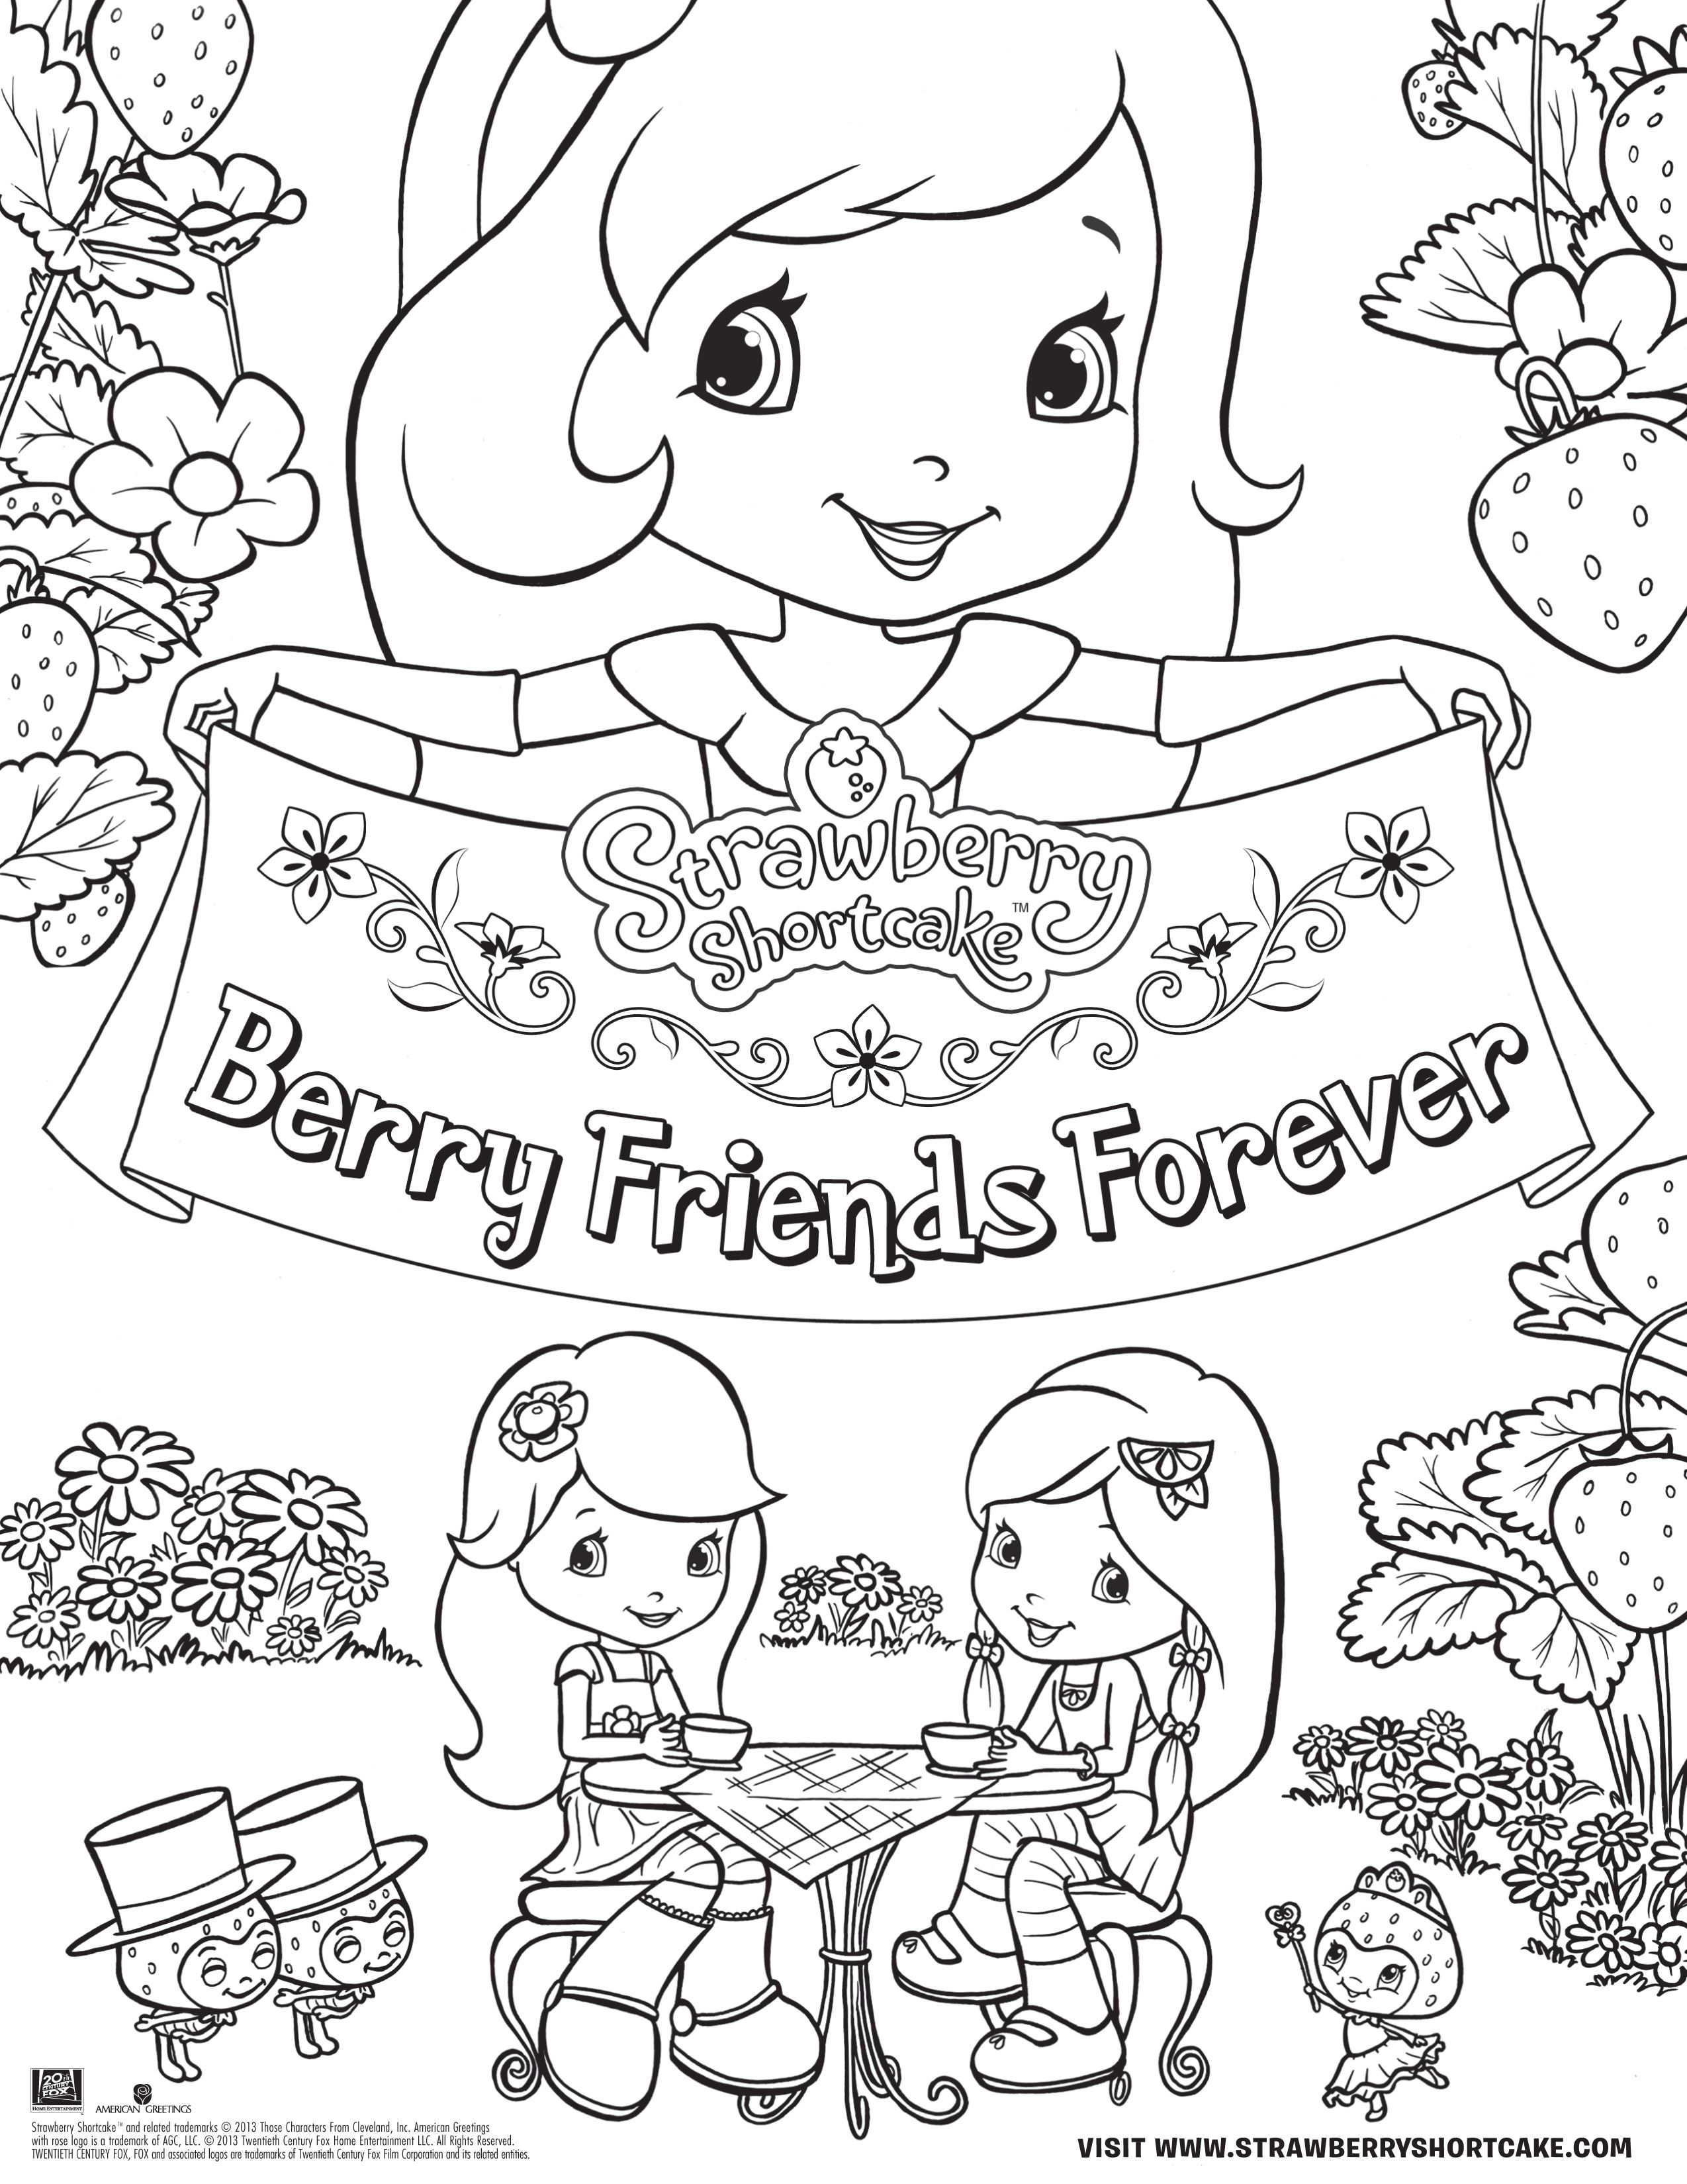 Take the Strawberry Shortcake Quiz Plus Download a Coloring Page ...